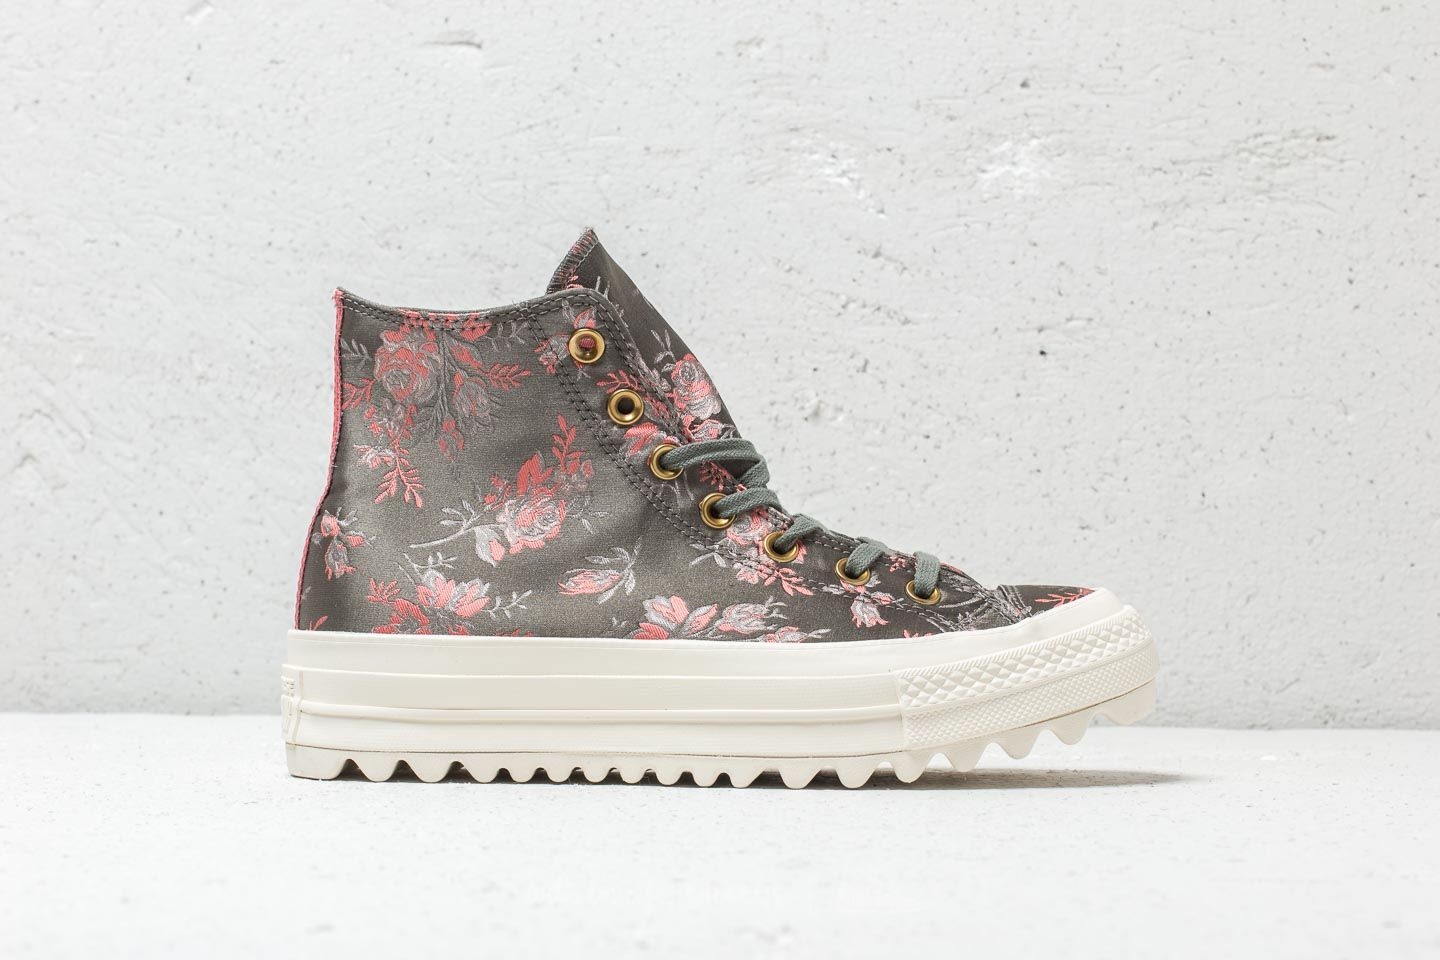 94155d5502a7 Converse Chuck Taylor All Star Lift Ripple Hi River Rock  Floral  Egret at a